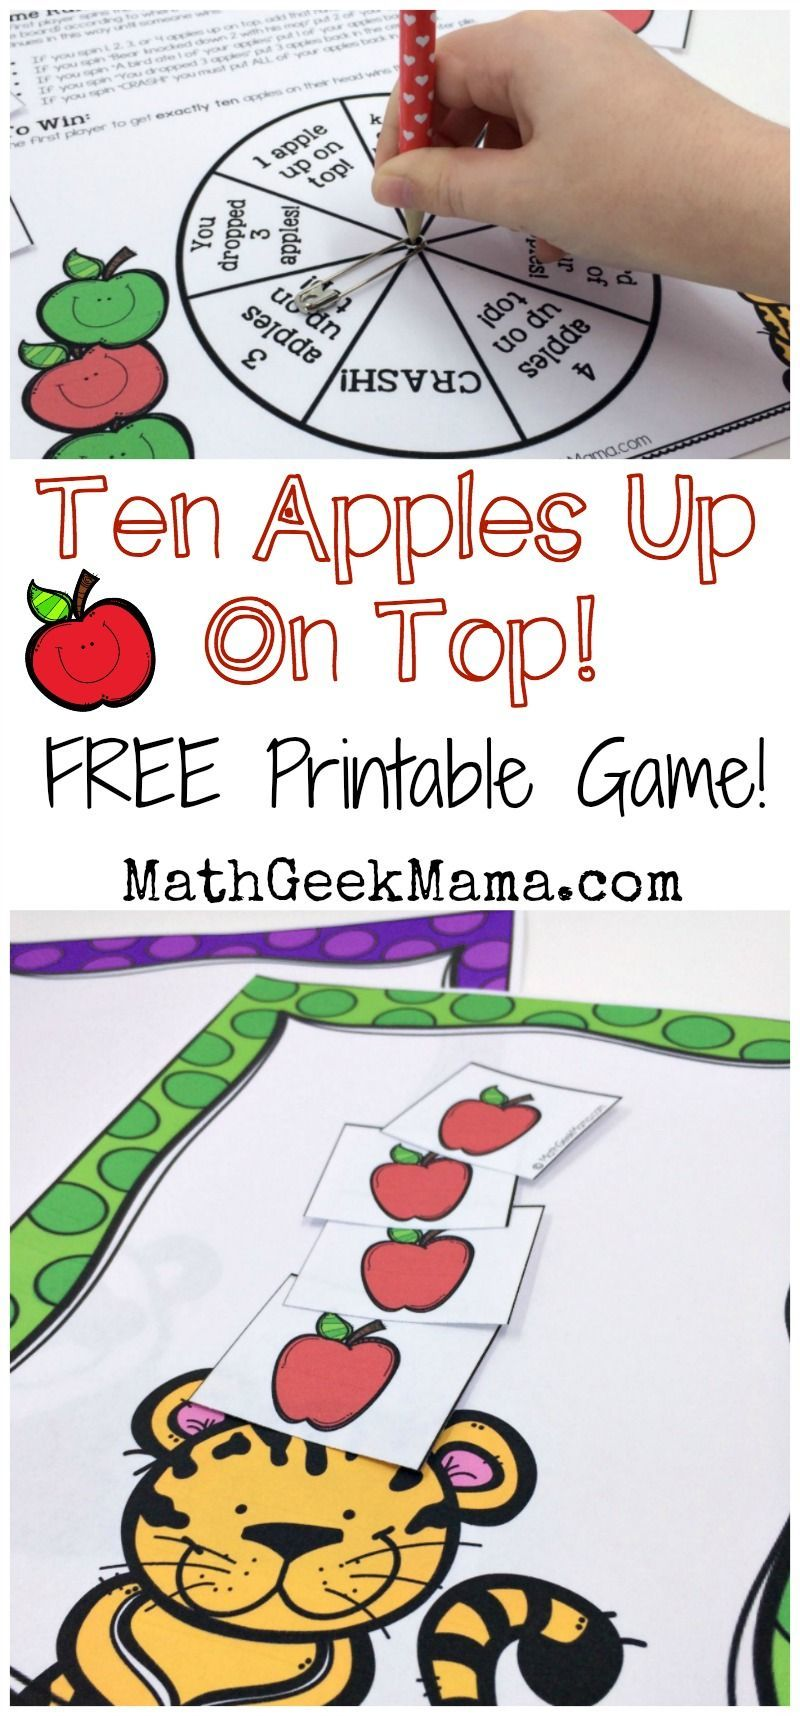 This super cute printable math game is perfect to play